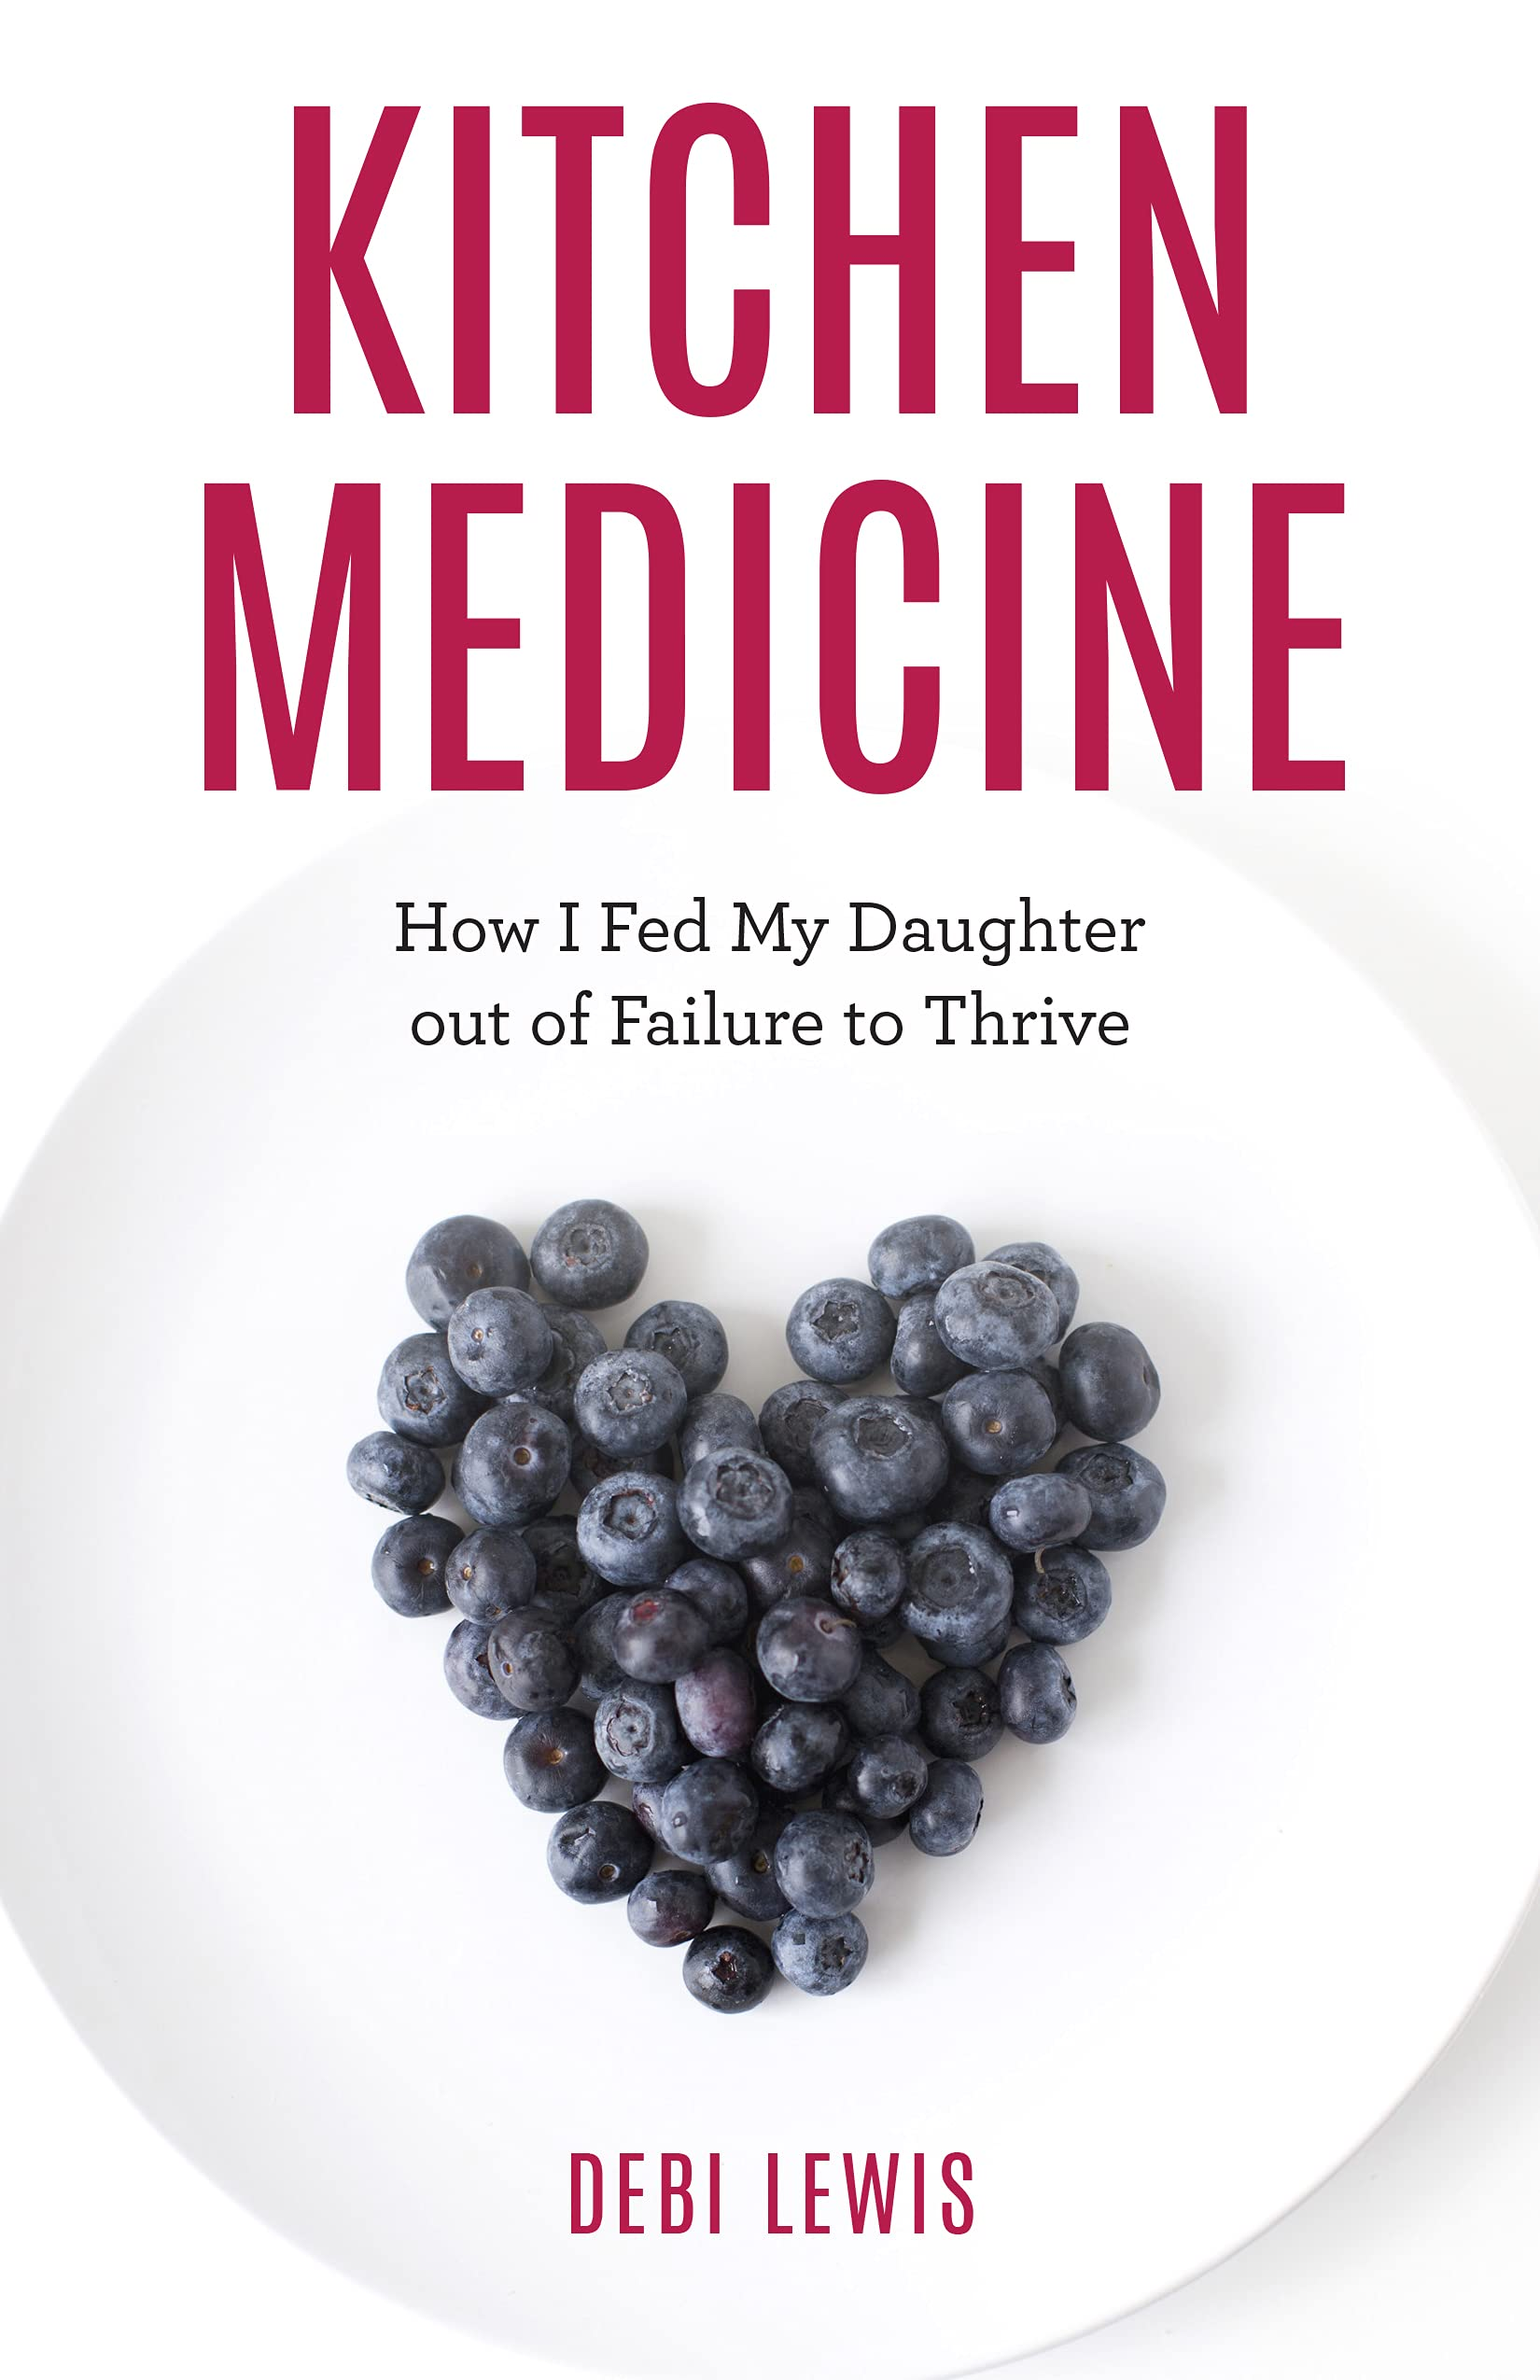 kitchen-medicine-how-i-fed-my-daughter-out-of-failure-to-thrive-debi-lewis